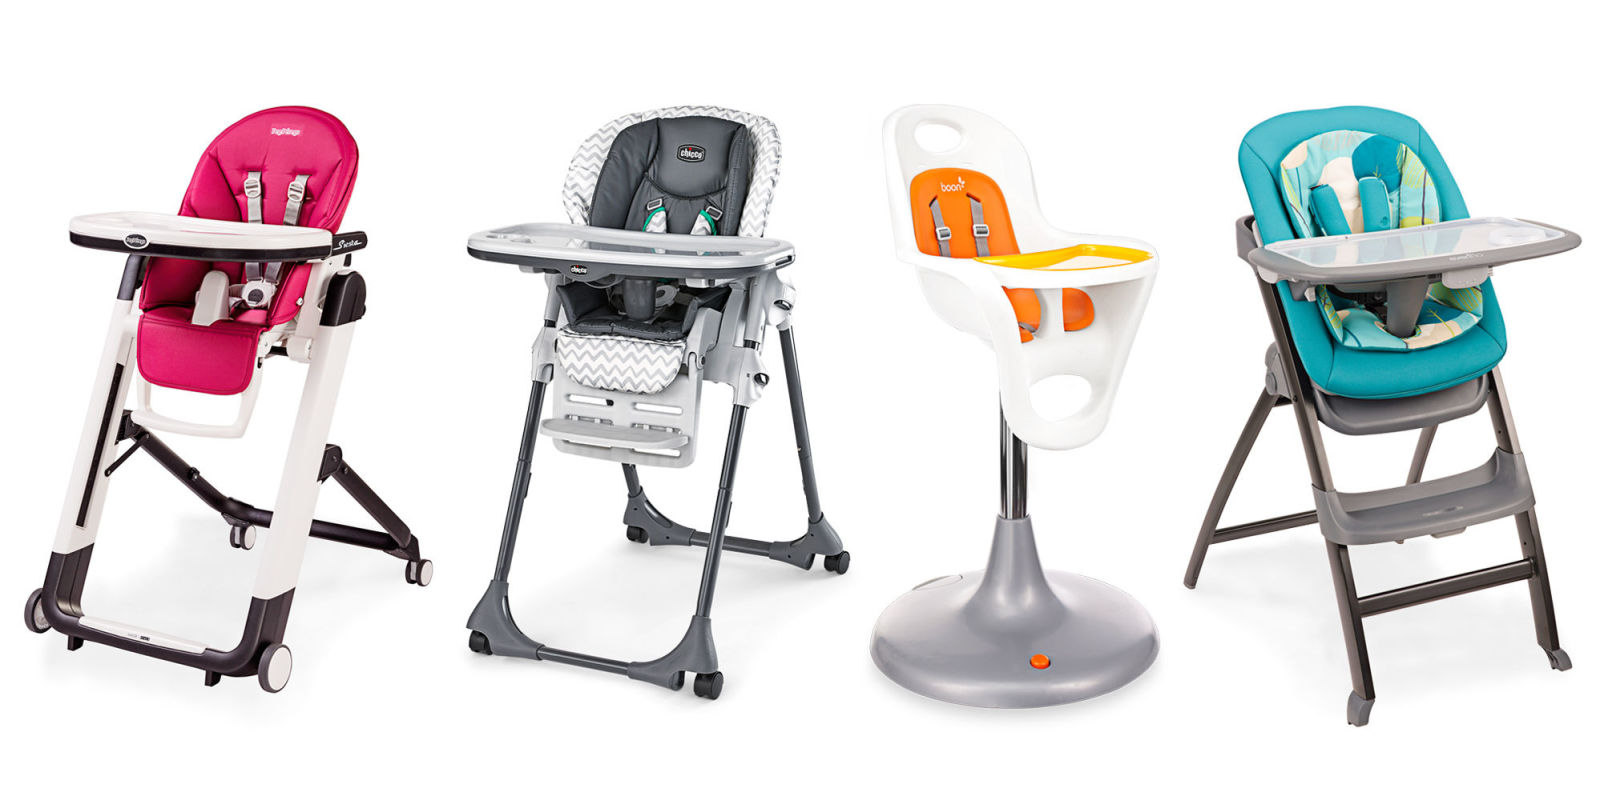 High Top Chairs Here Are The Top High Chairs Of 2016 Best High Chairs